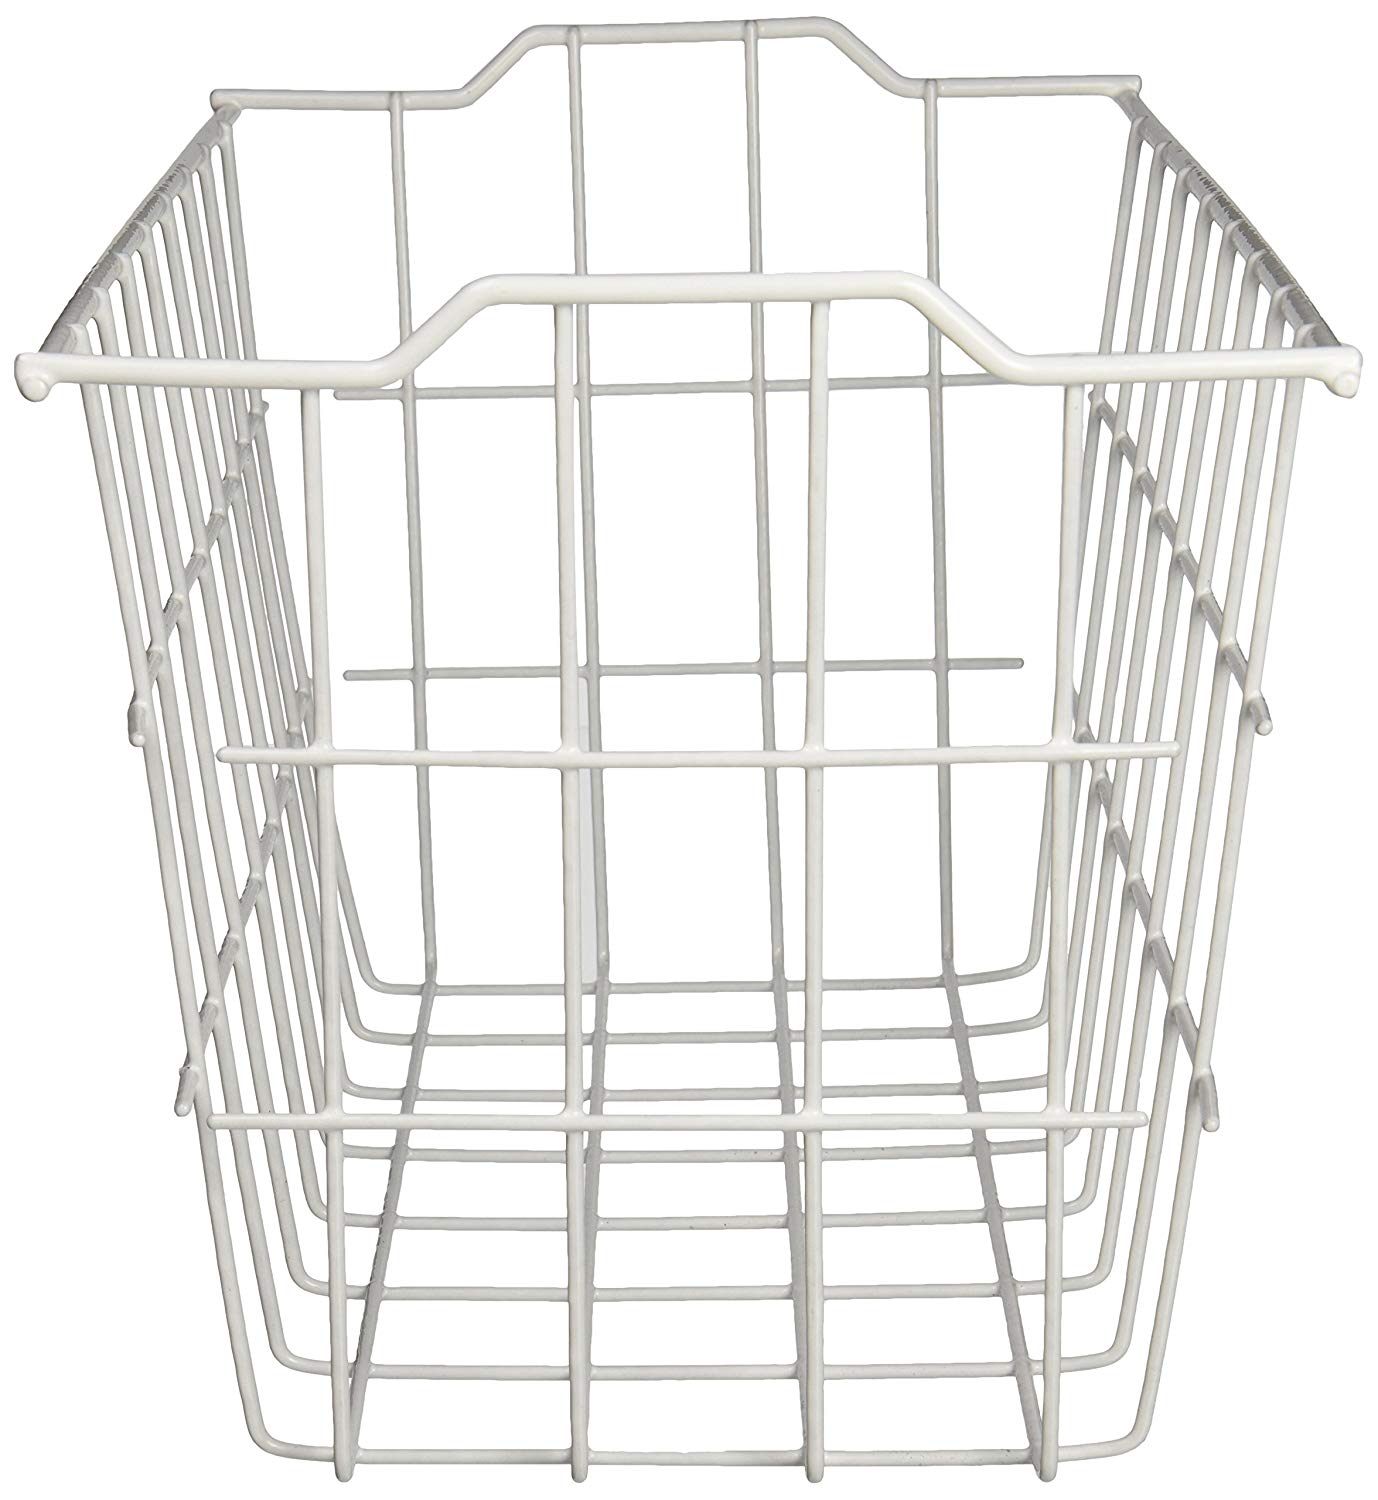 Extra Large 15.25 x 7.5 Gray Cabinet & Wall Mount Basket